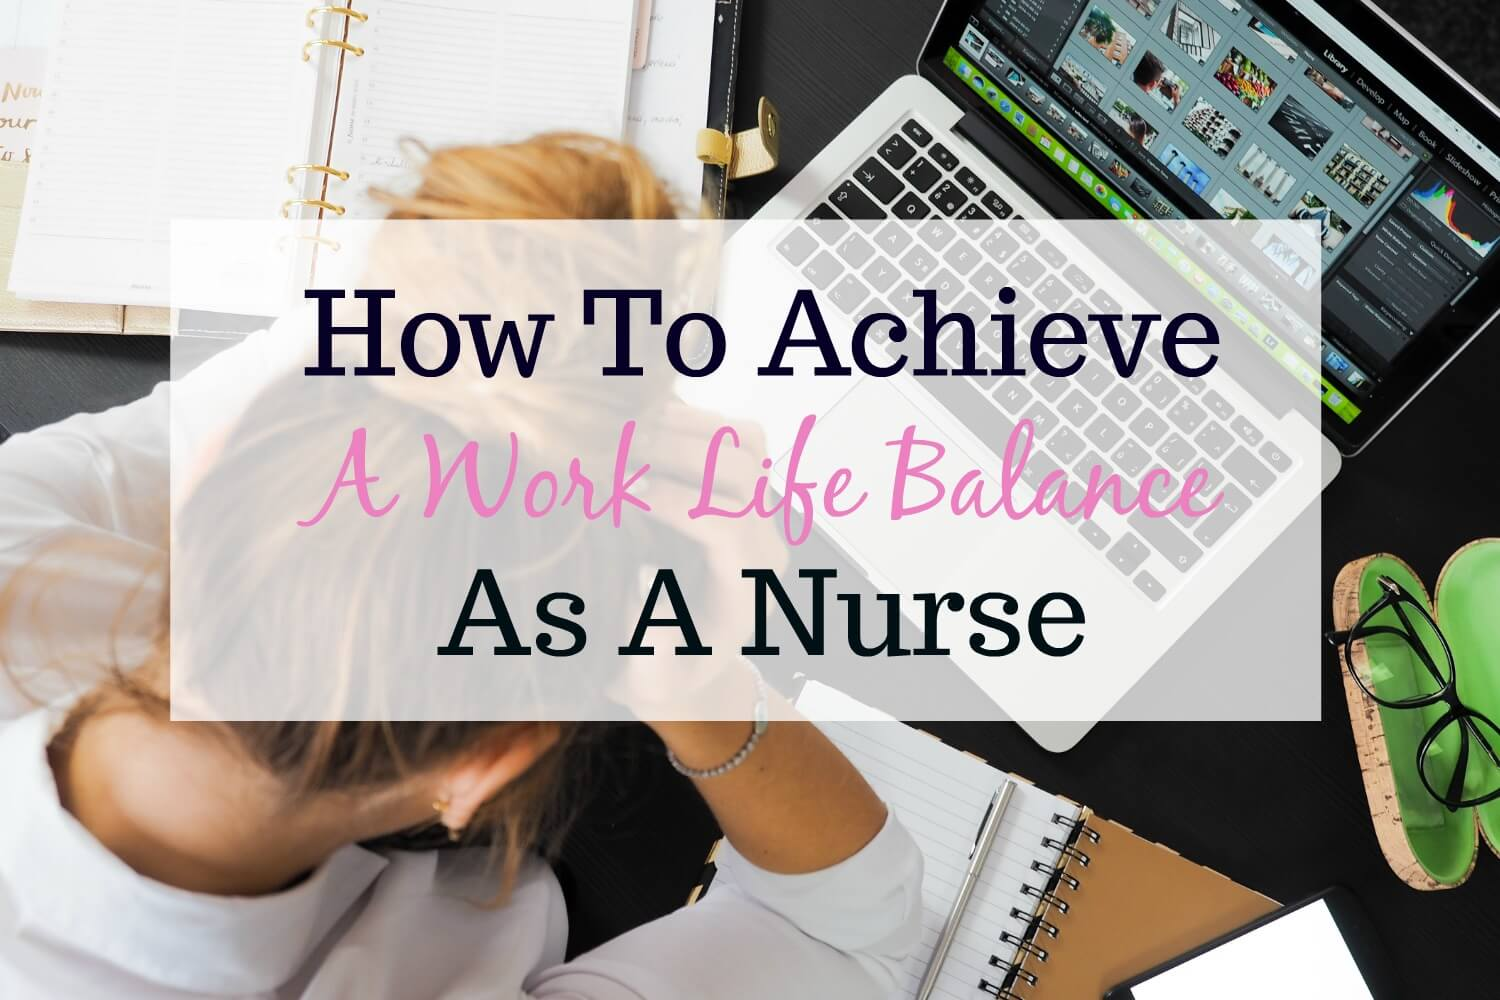 Nurse Life:  How To Achieve A Work Life Balance